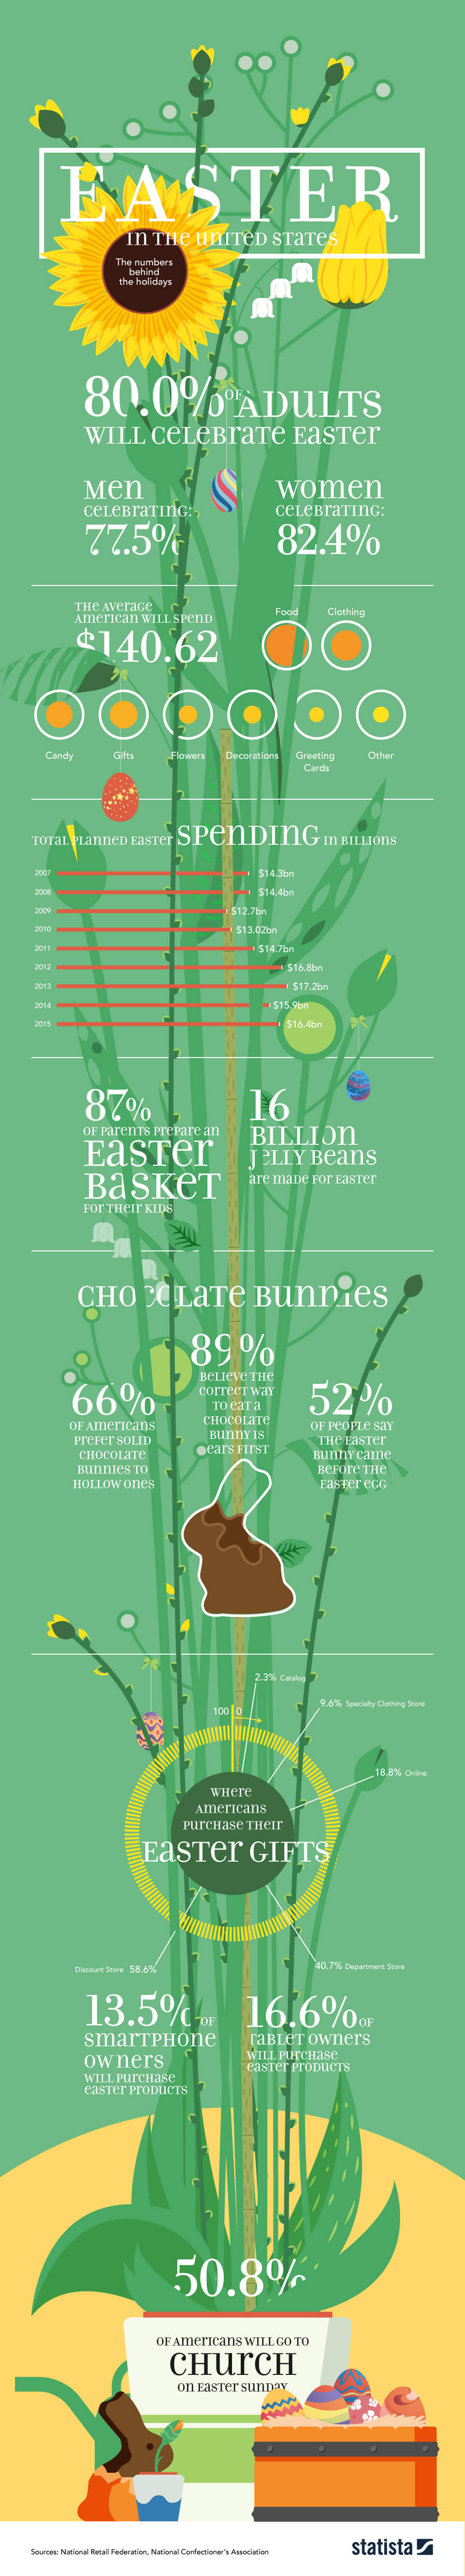 Infographic: Easter In The United States By The Numbers | Statista